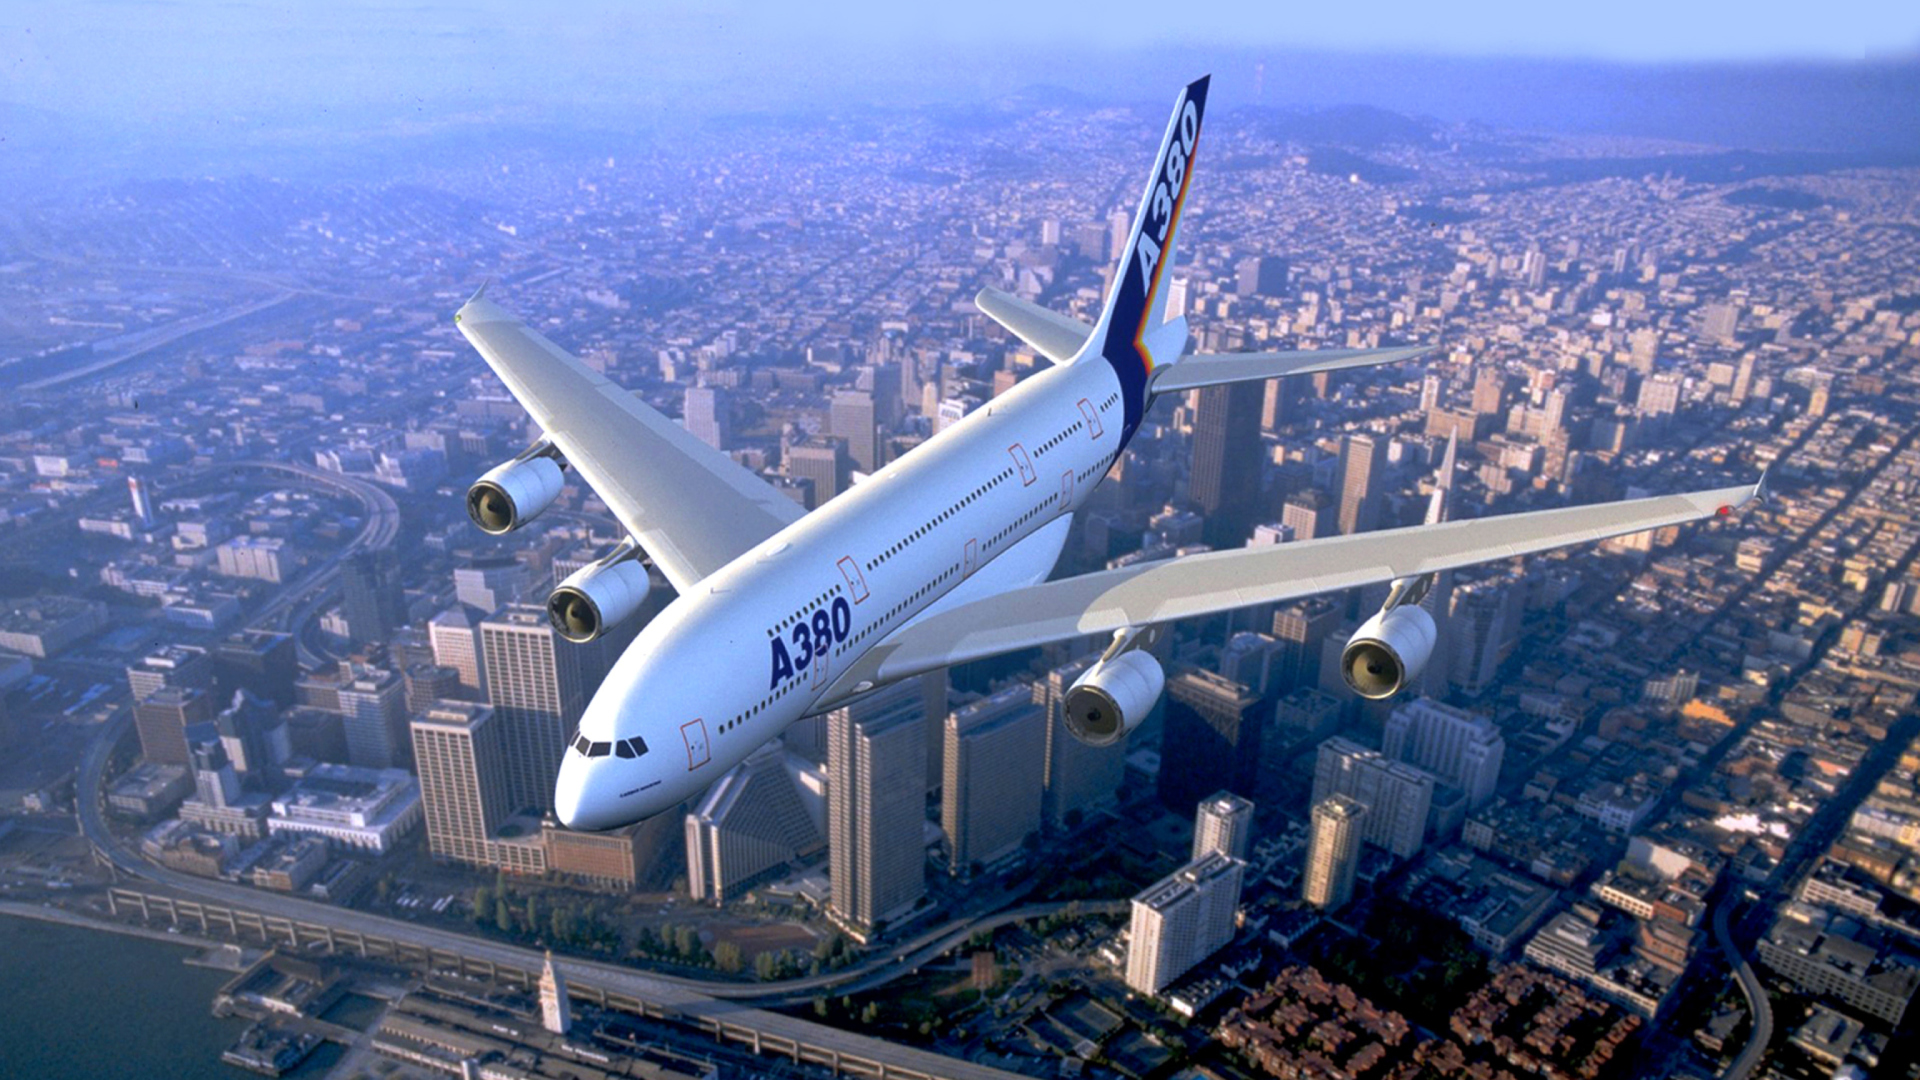 Airbus A380 Wallpaper for Desktop 1920x1080 Full HD 1920x1080